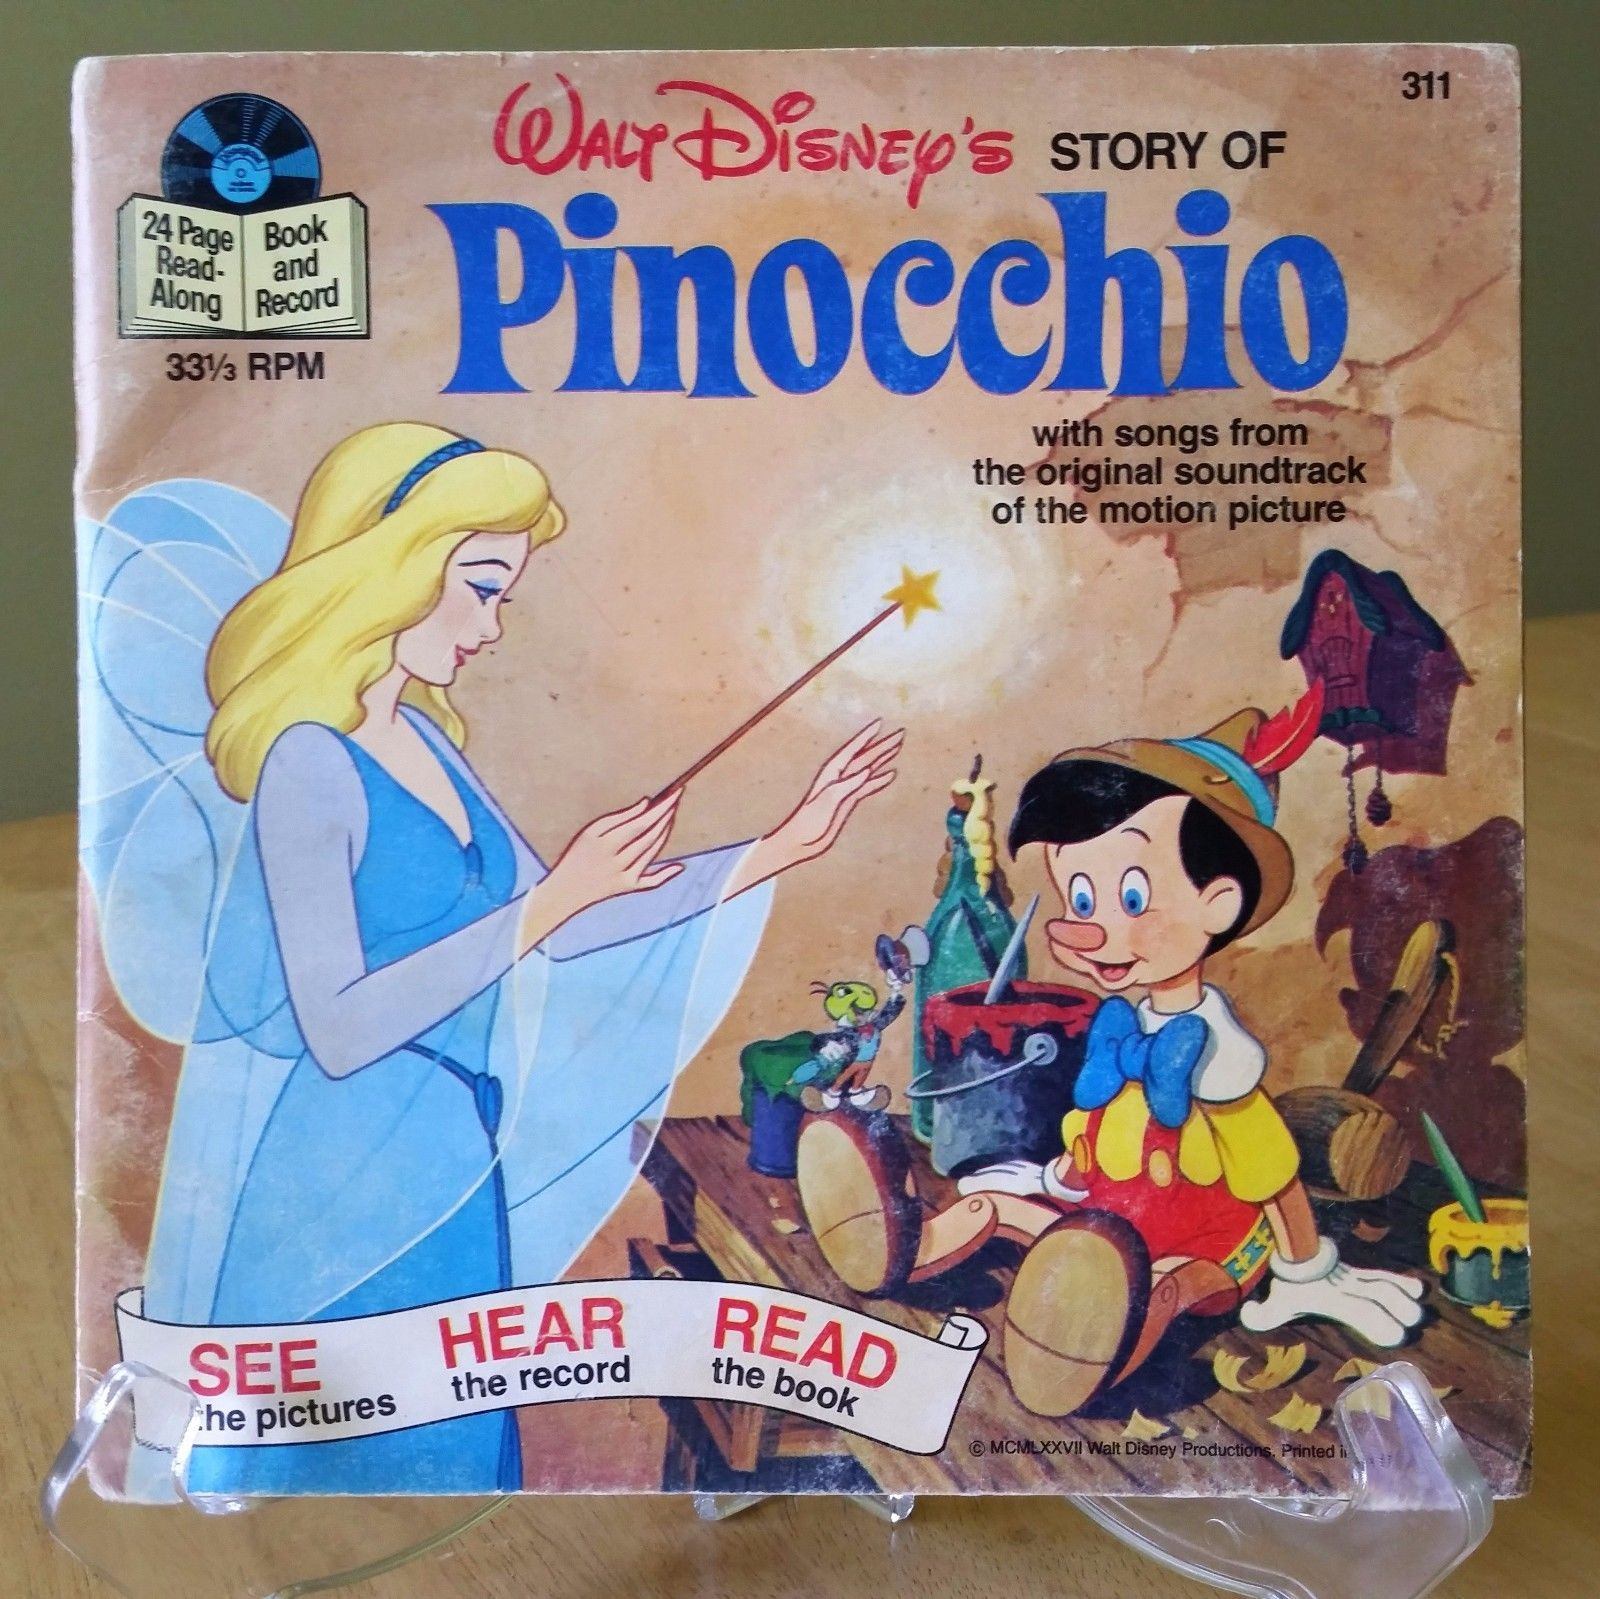 Primary image for WALT DISNEY Story of Pinocchio SEE HEAR READ 7 inch BOOK  33 1/3 RPM 1977 311